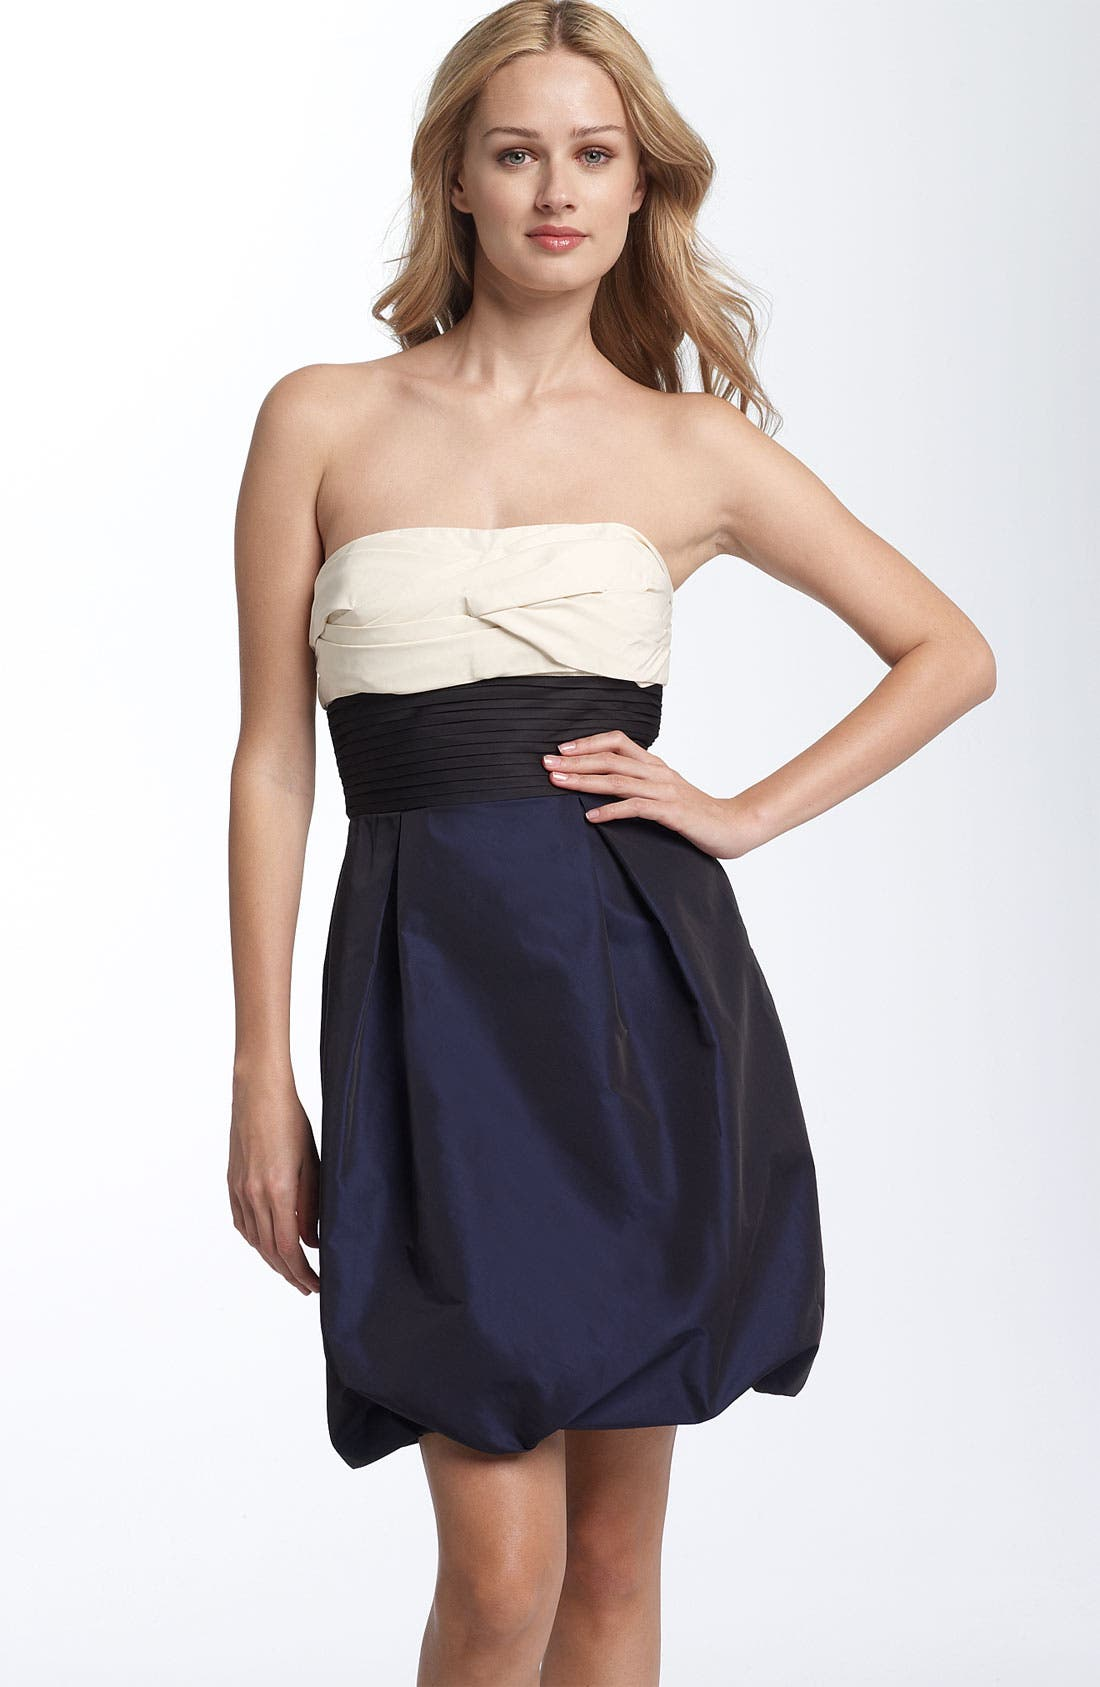 Alternate Image 1 Selected - BCBGMAXAZRIA Colorblocked Strapless Dress